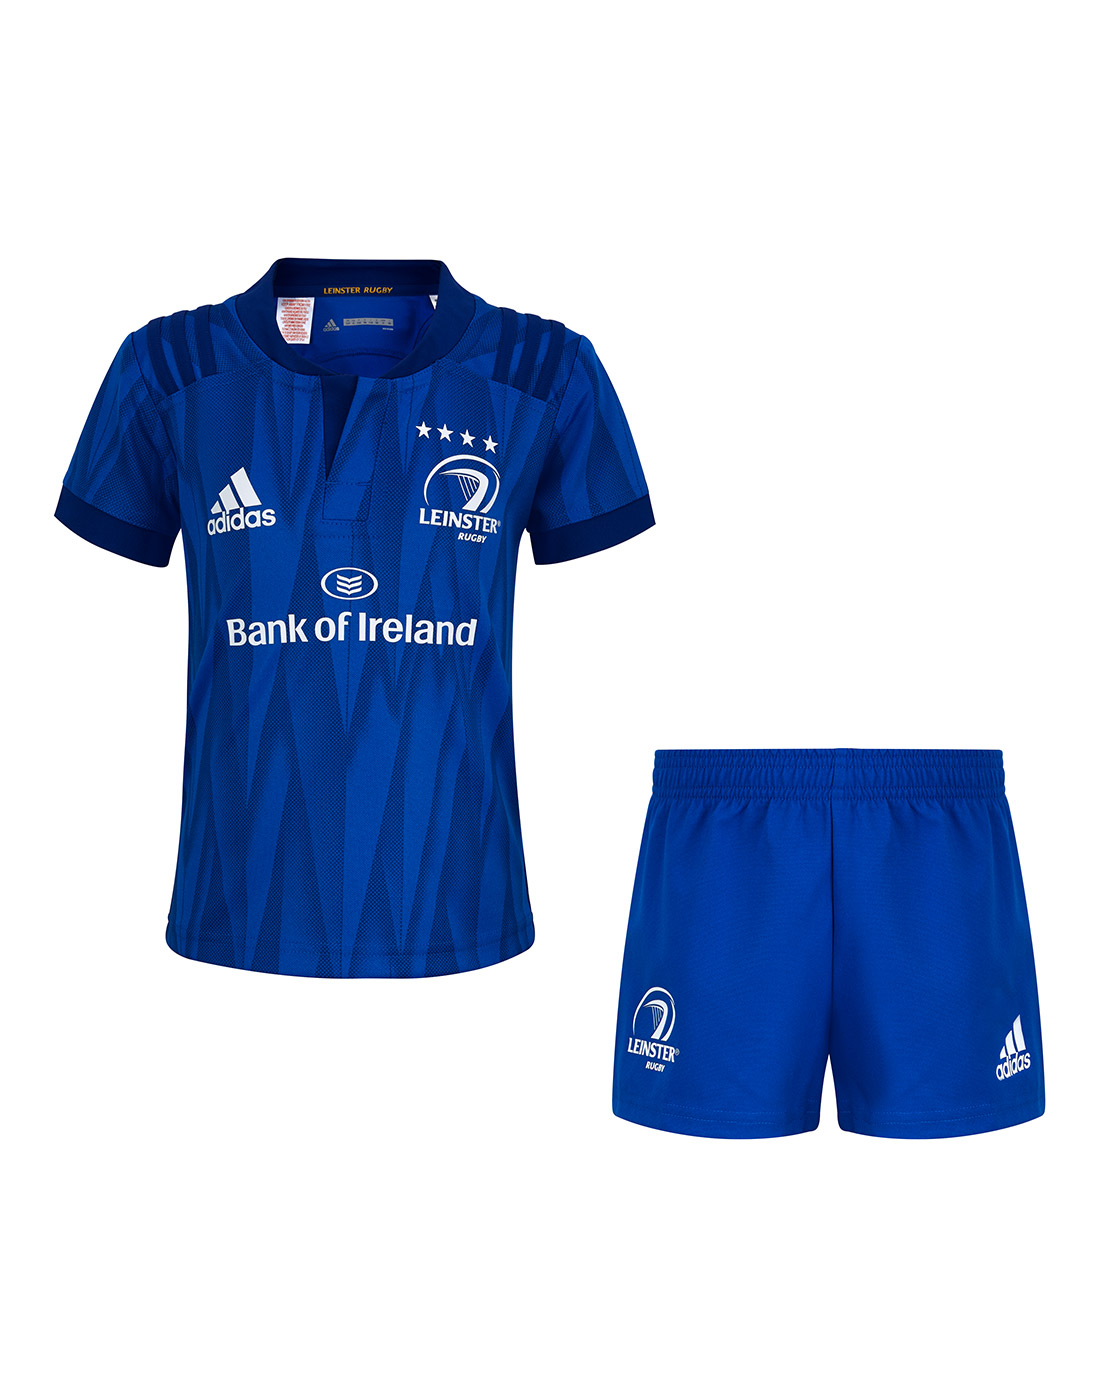 80d0f043f adidas Leinster Home Infants Kit 2018/19 | Life Style Sports